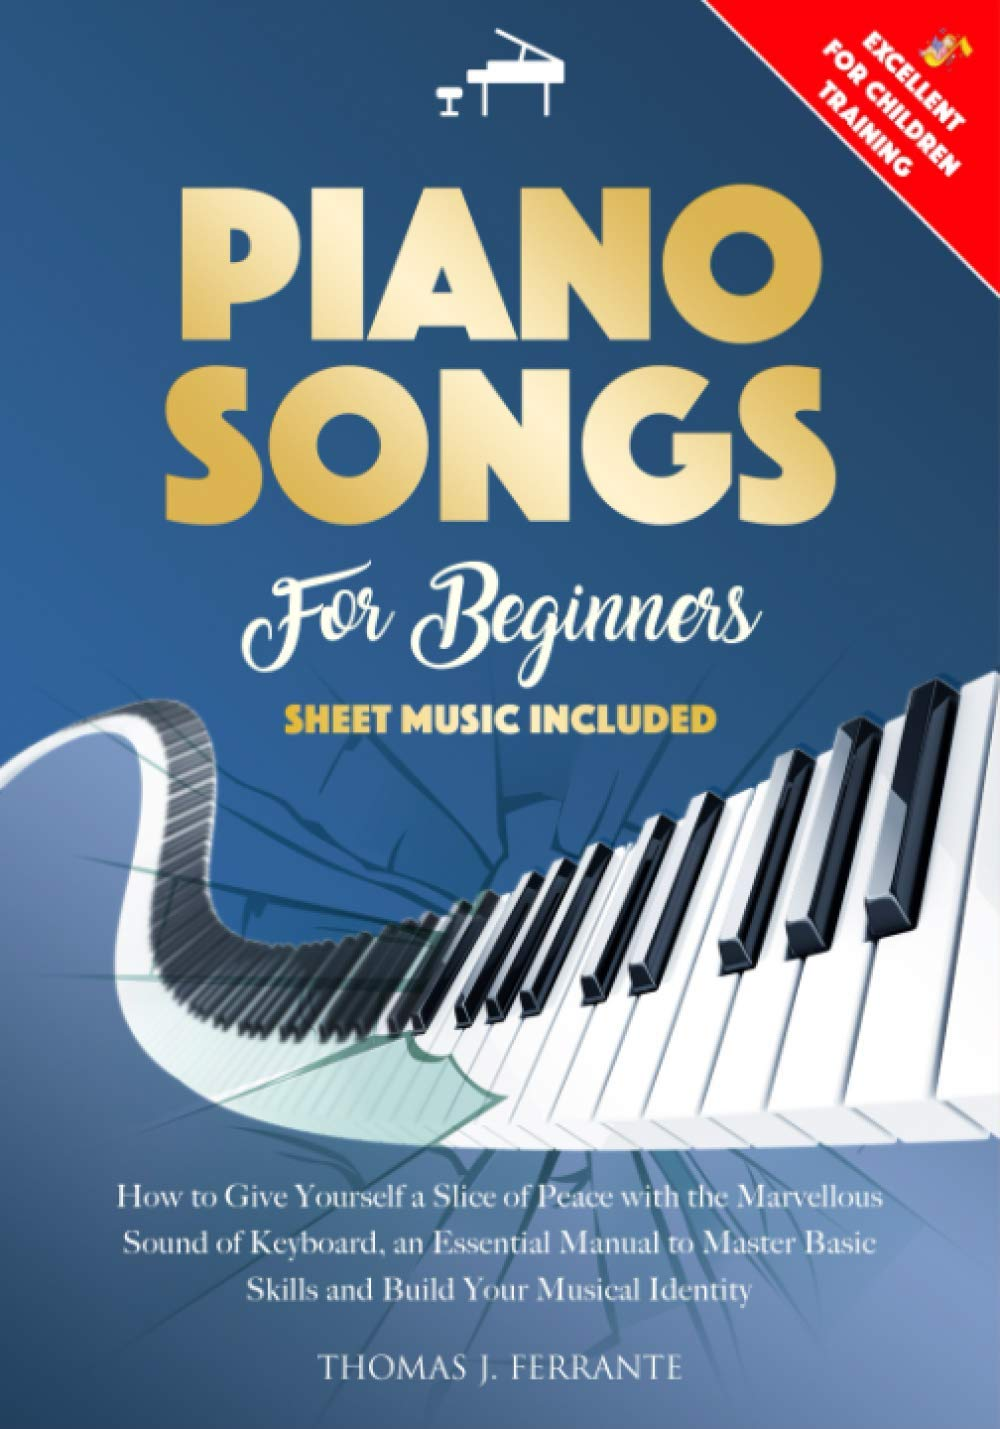 Piano Songs for Beginners: How to Give Yourself a Slice of Peace with the Marvellous Sound of Keyboard, an Essential Manual to Master Basic Skills and Build Your Musical Identity